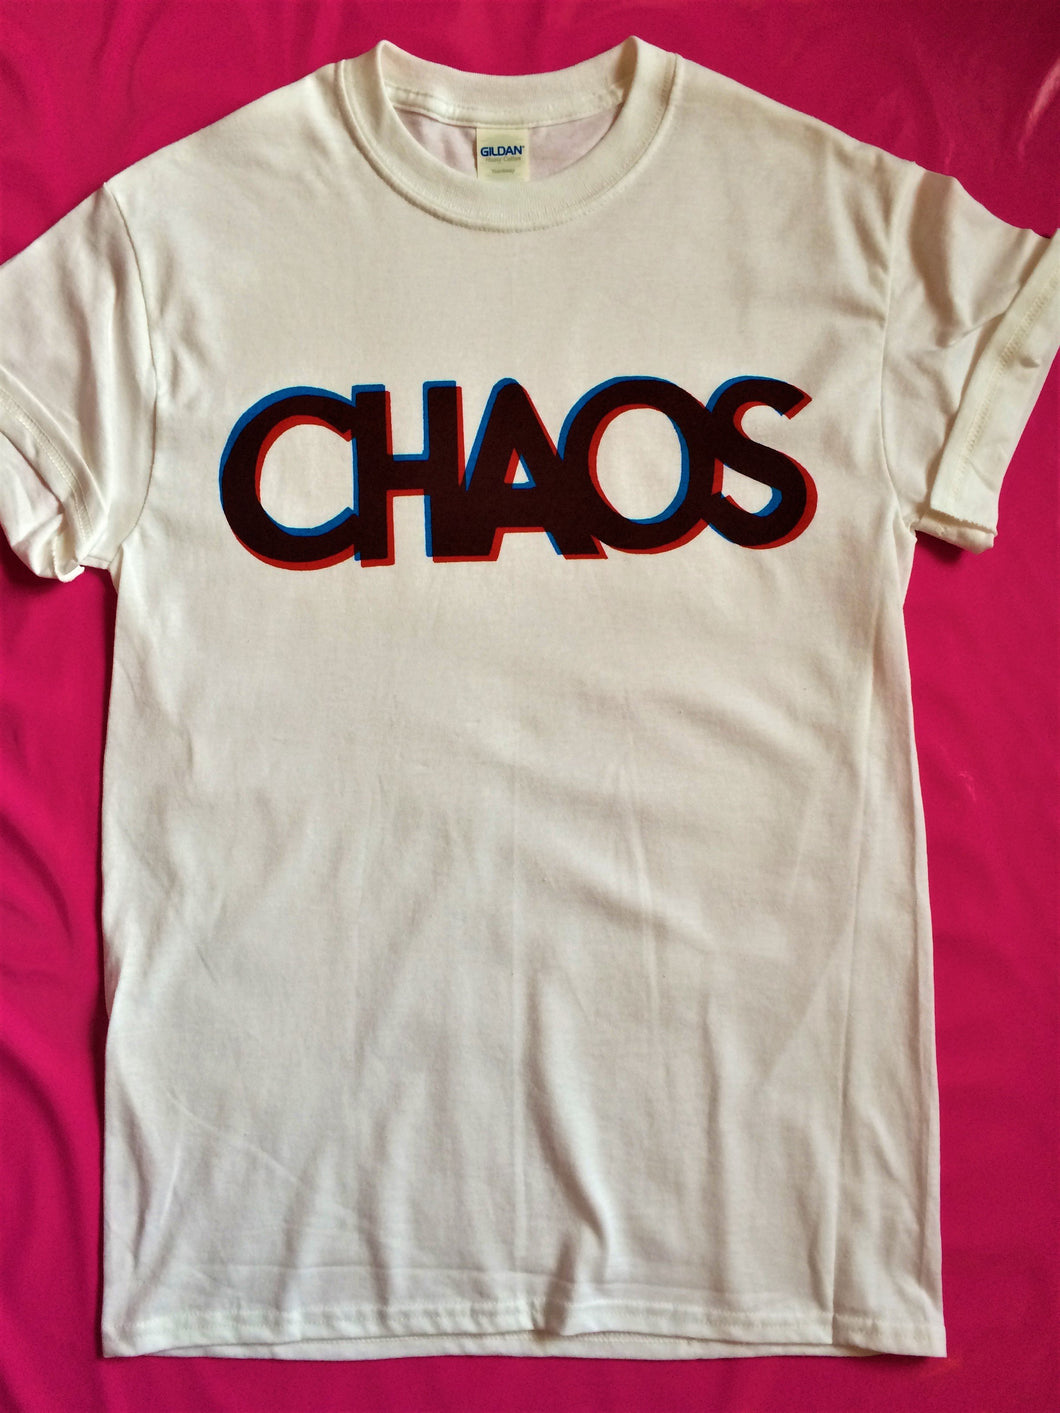 Chaos Punk Rock Slogan T-Shirt Blue & Red Print on White Shirt